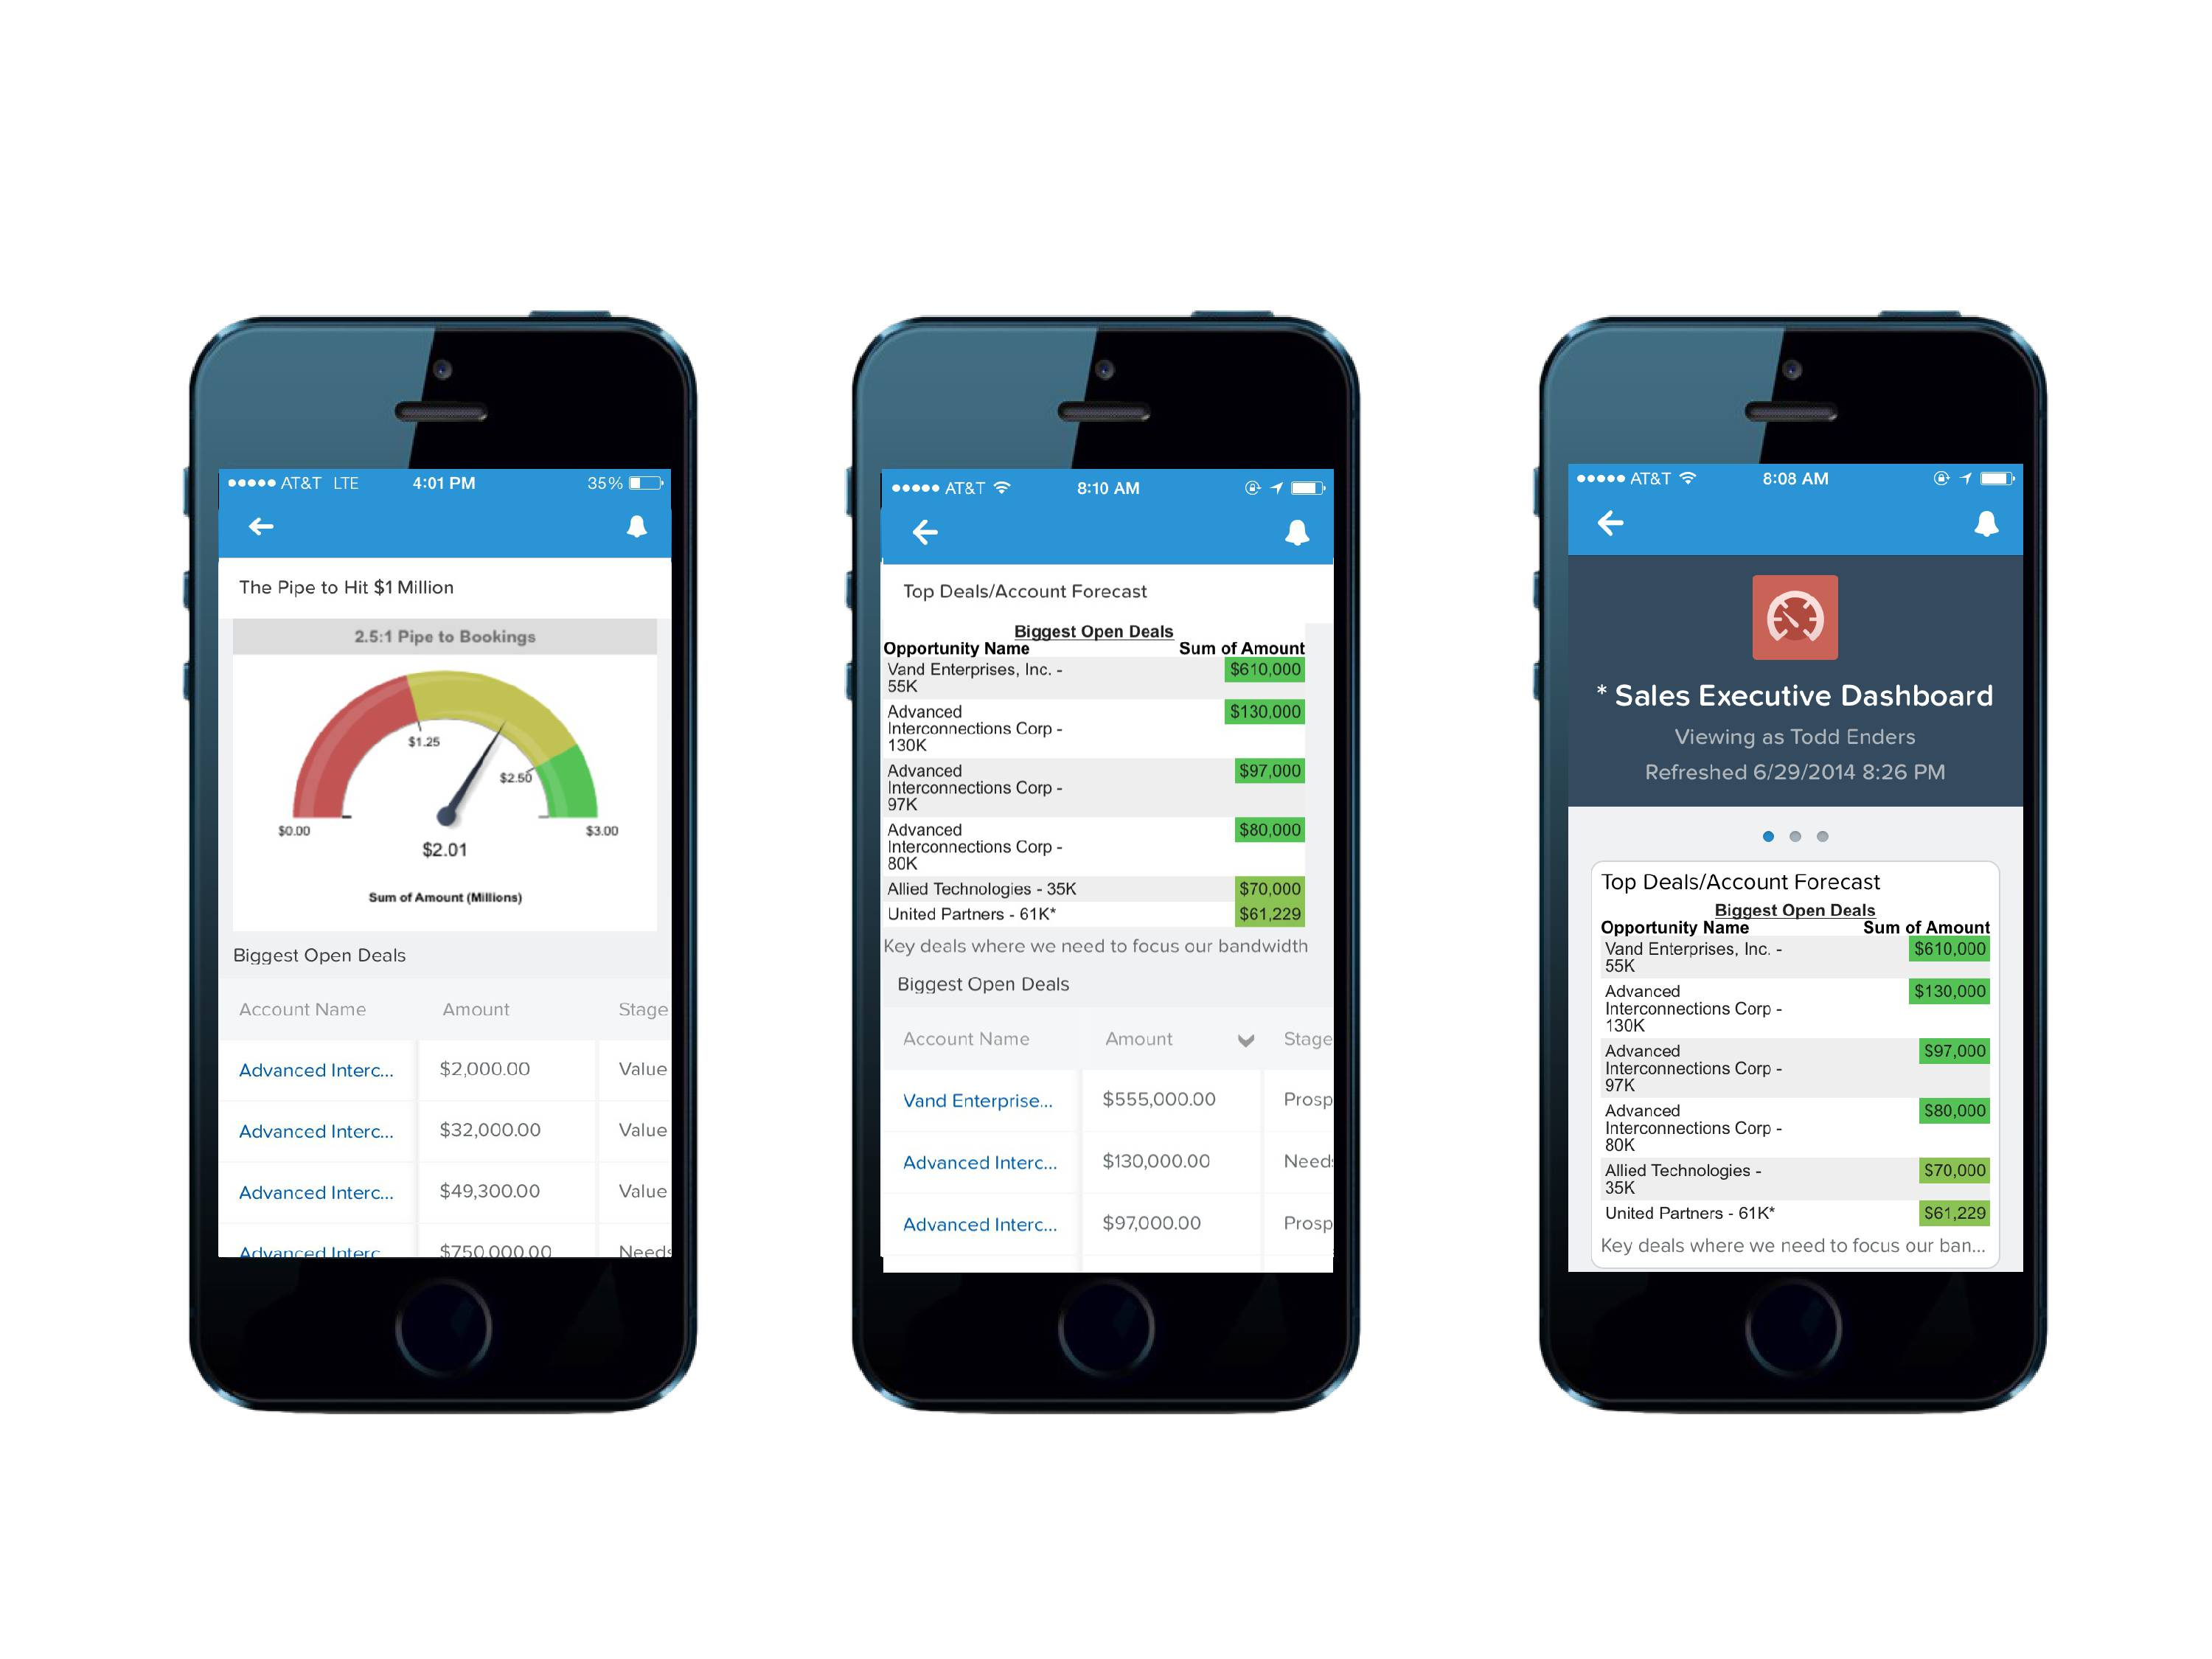 Salesforce Mobile Reports And Dashboards Provide In-depth